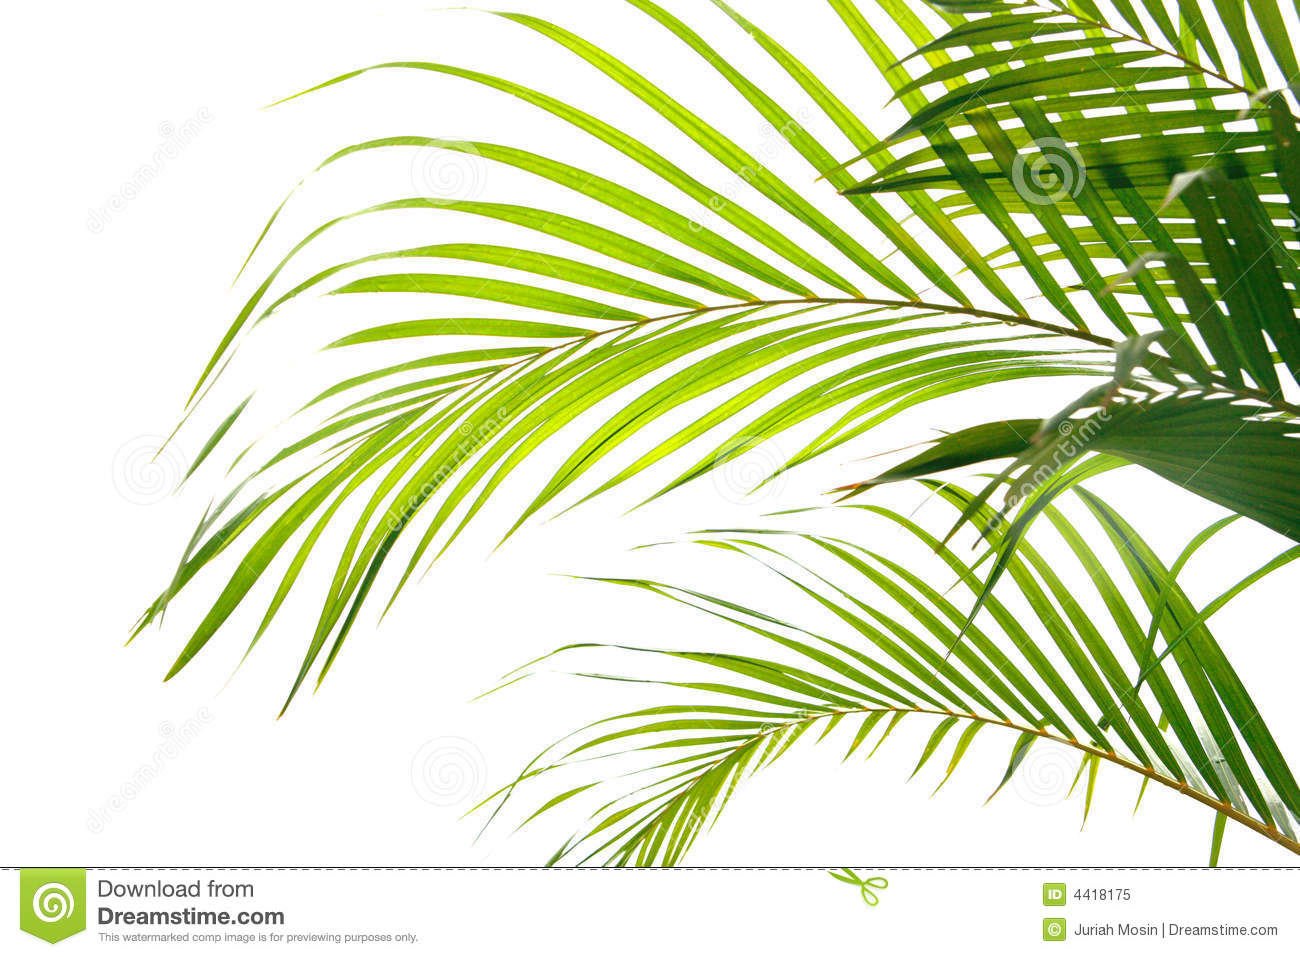 Palm fronds waving in the wind,